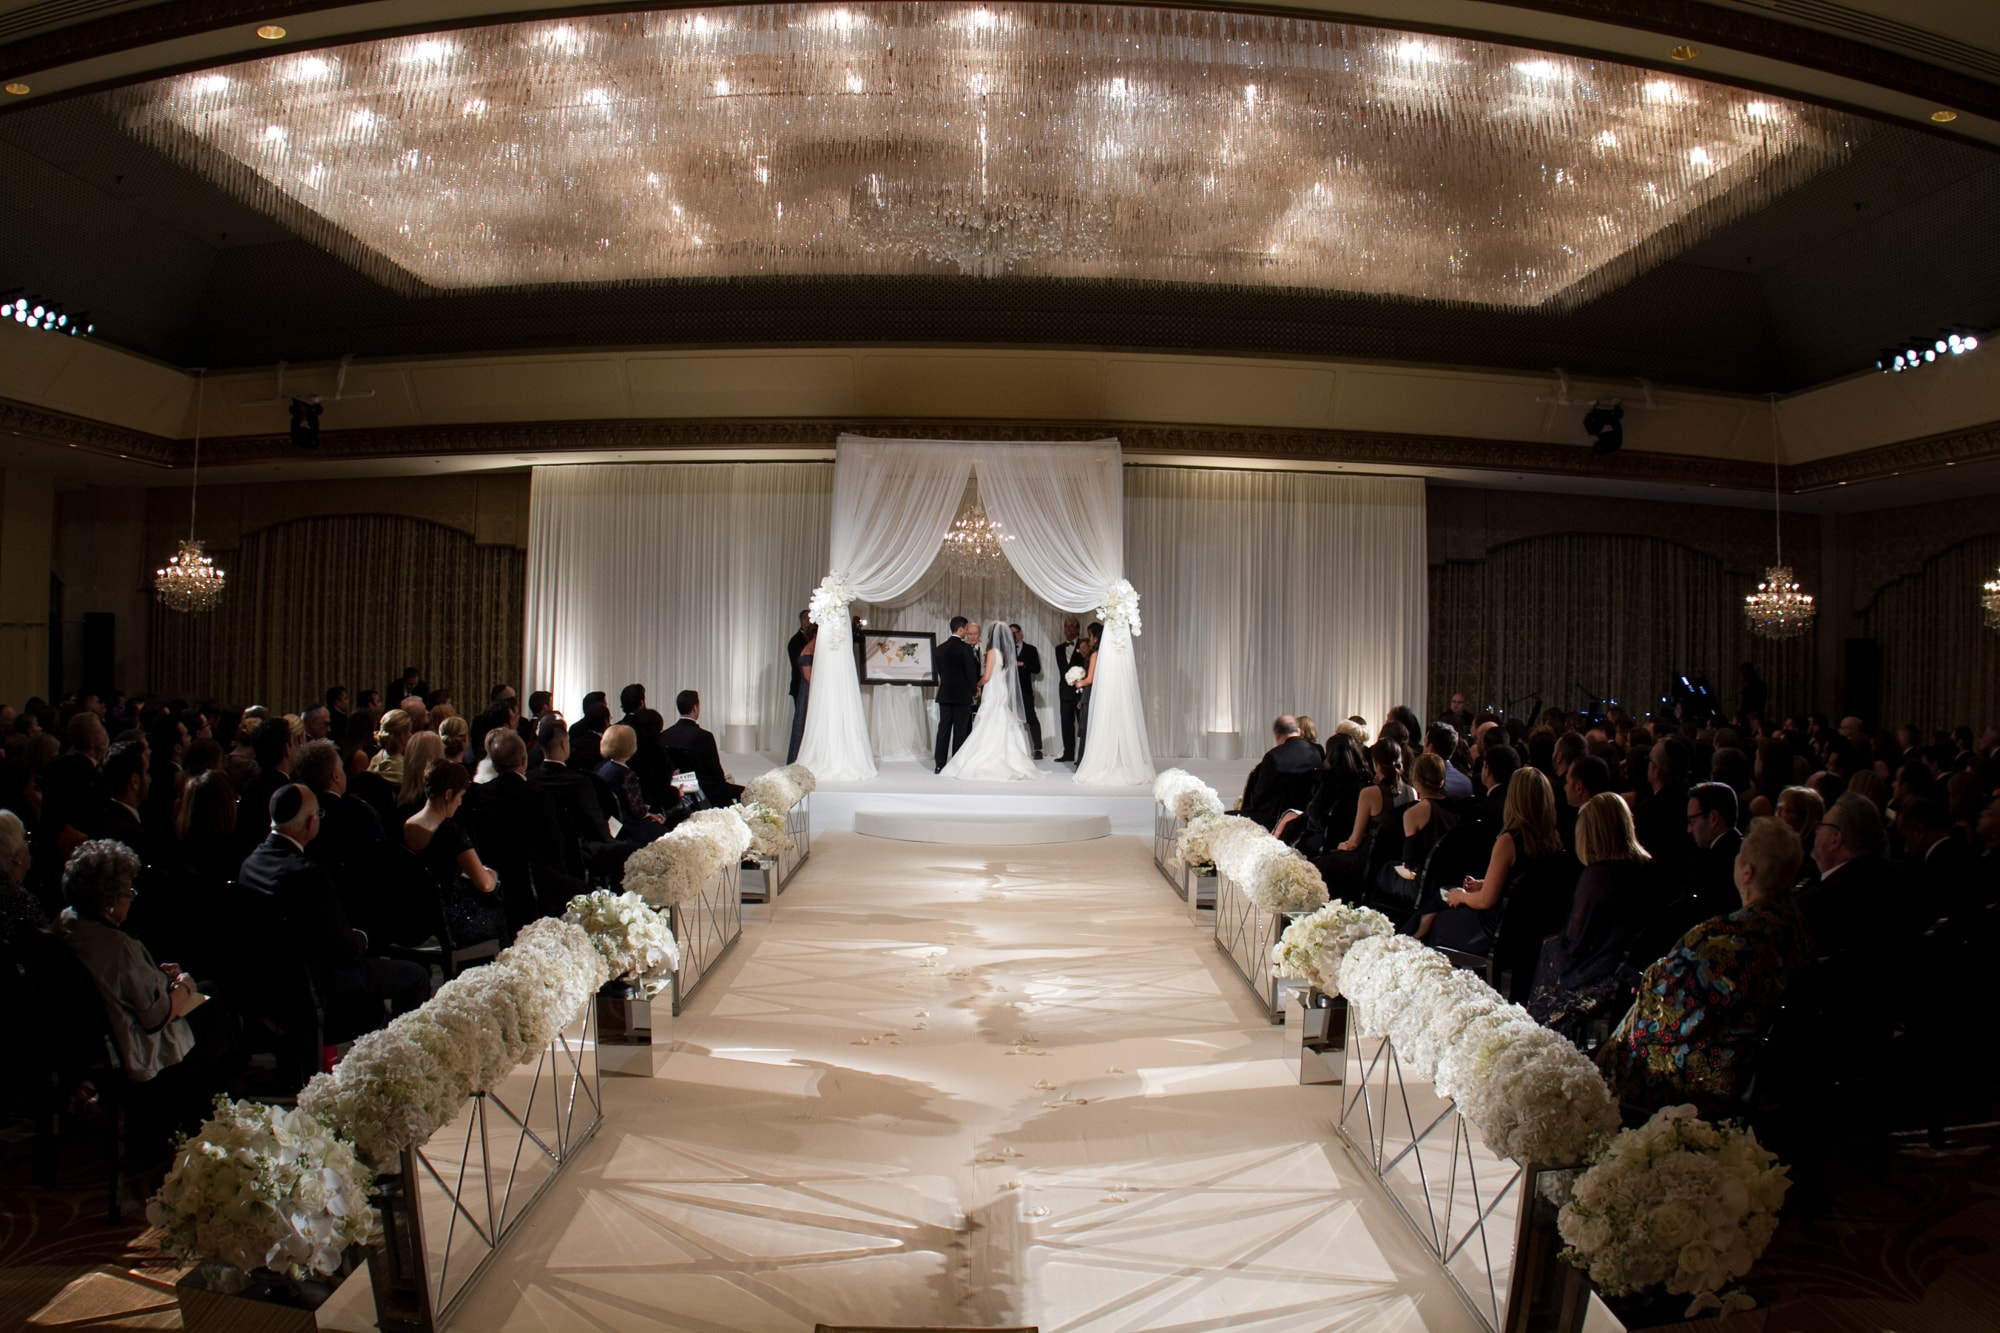 Romantic wedding ceremony at the Ritz Carlton Chicago